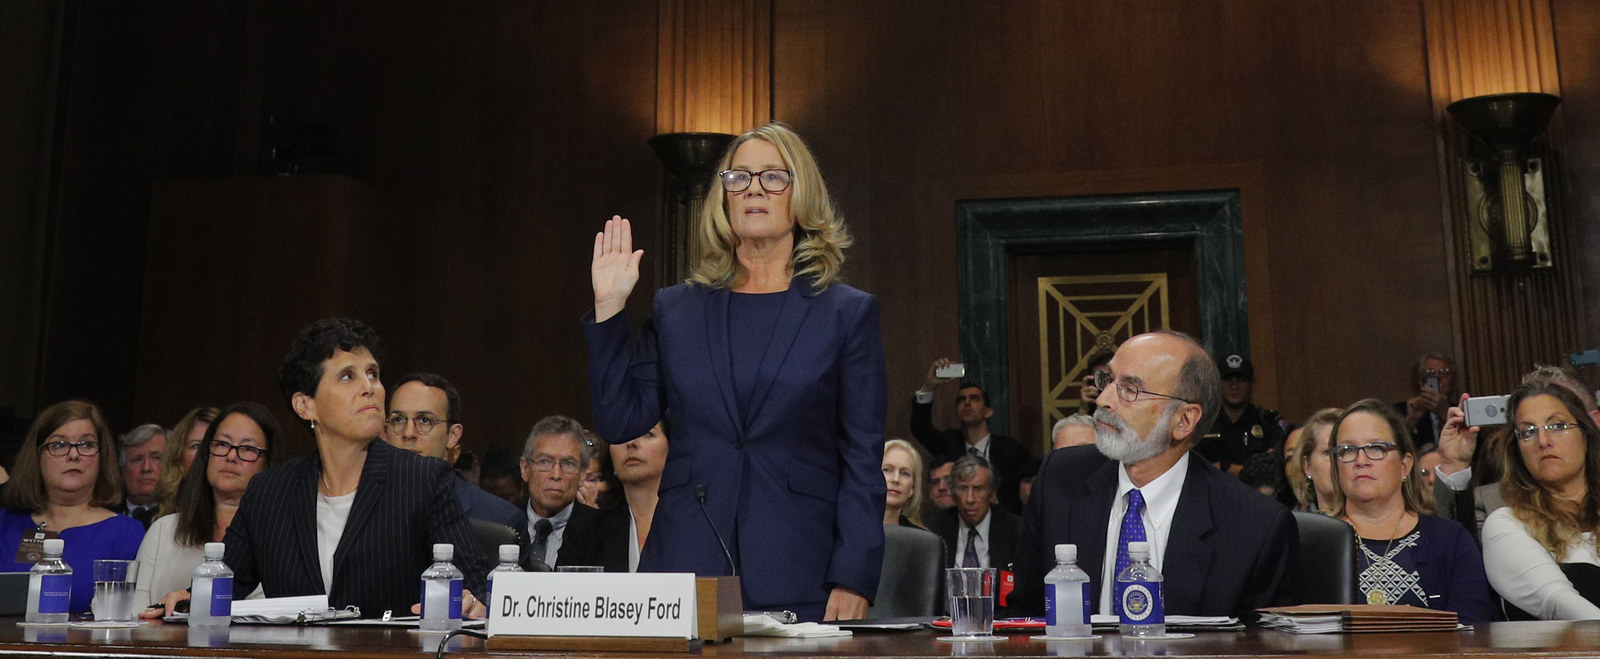 WASHINGTON, DC - SEPTEMBER 27: Professor Christine Blasey Ford, who accused U.S. Supreme Court nominee Brett Kavanaugh of a sexual assault in 1982, is sworn in to testify before a Senate Judiciary Committee confirmation hearing for Kavanaugh on Capitol Hill September 27, 2018 in Washington, DC. A professor at Palo Alto University and a research psychologist at the Stanford University School of Medicine, Ford has accused Supreme Court nominee Judge Brett Kavanaugh of sexually assaulting her during a party in 1982 when they were high school students in suburban Maryland.